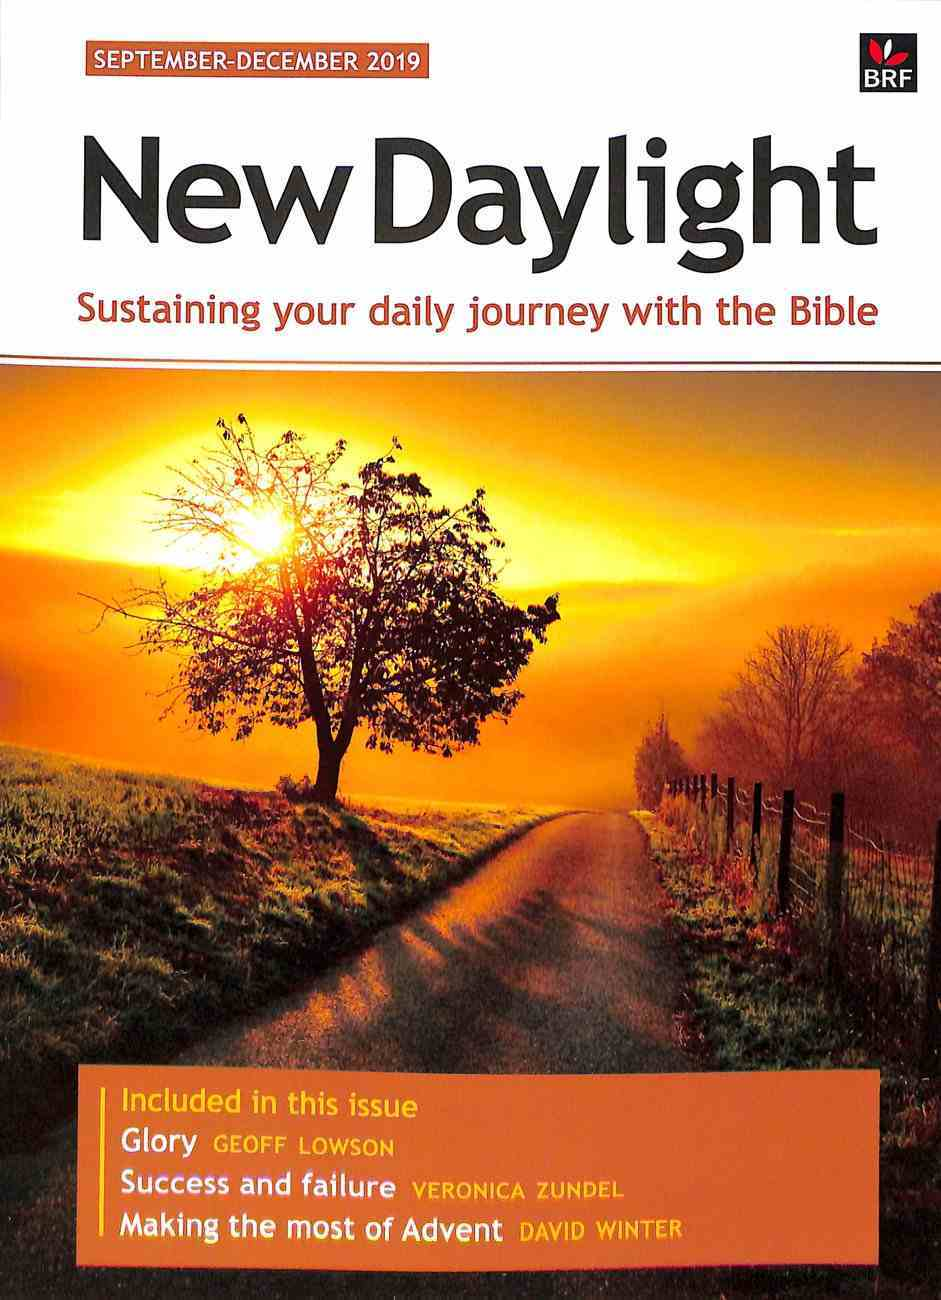 New Daylight Deluxe 2019 #03: Sep-Dec (Large Print) Paperback